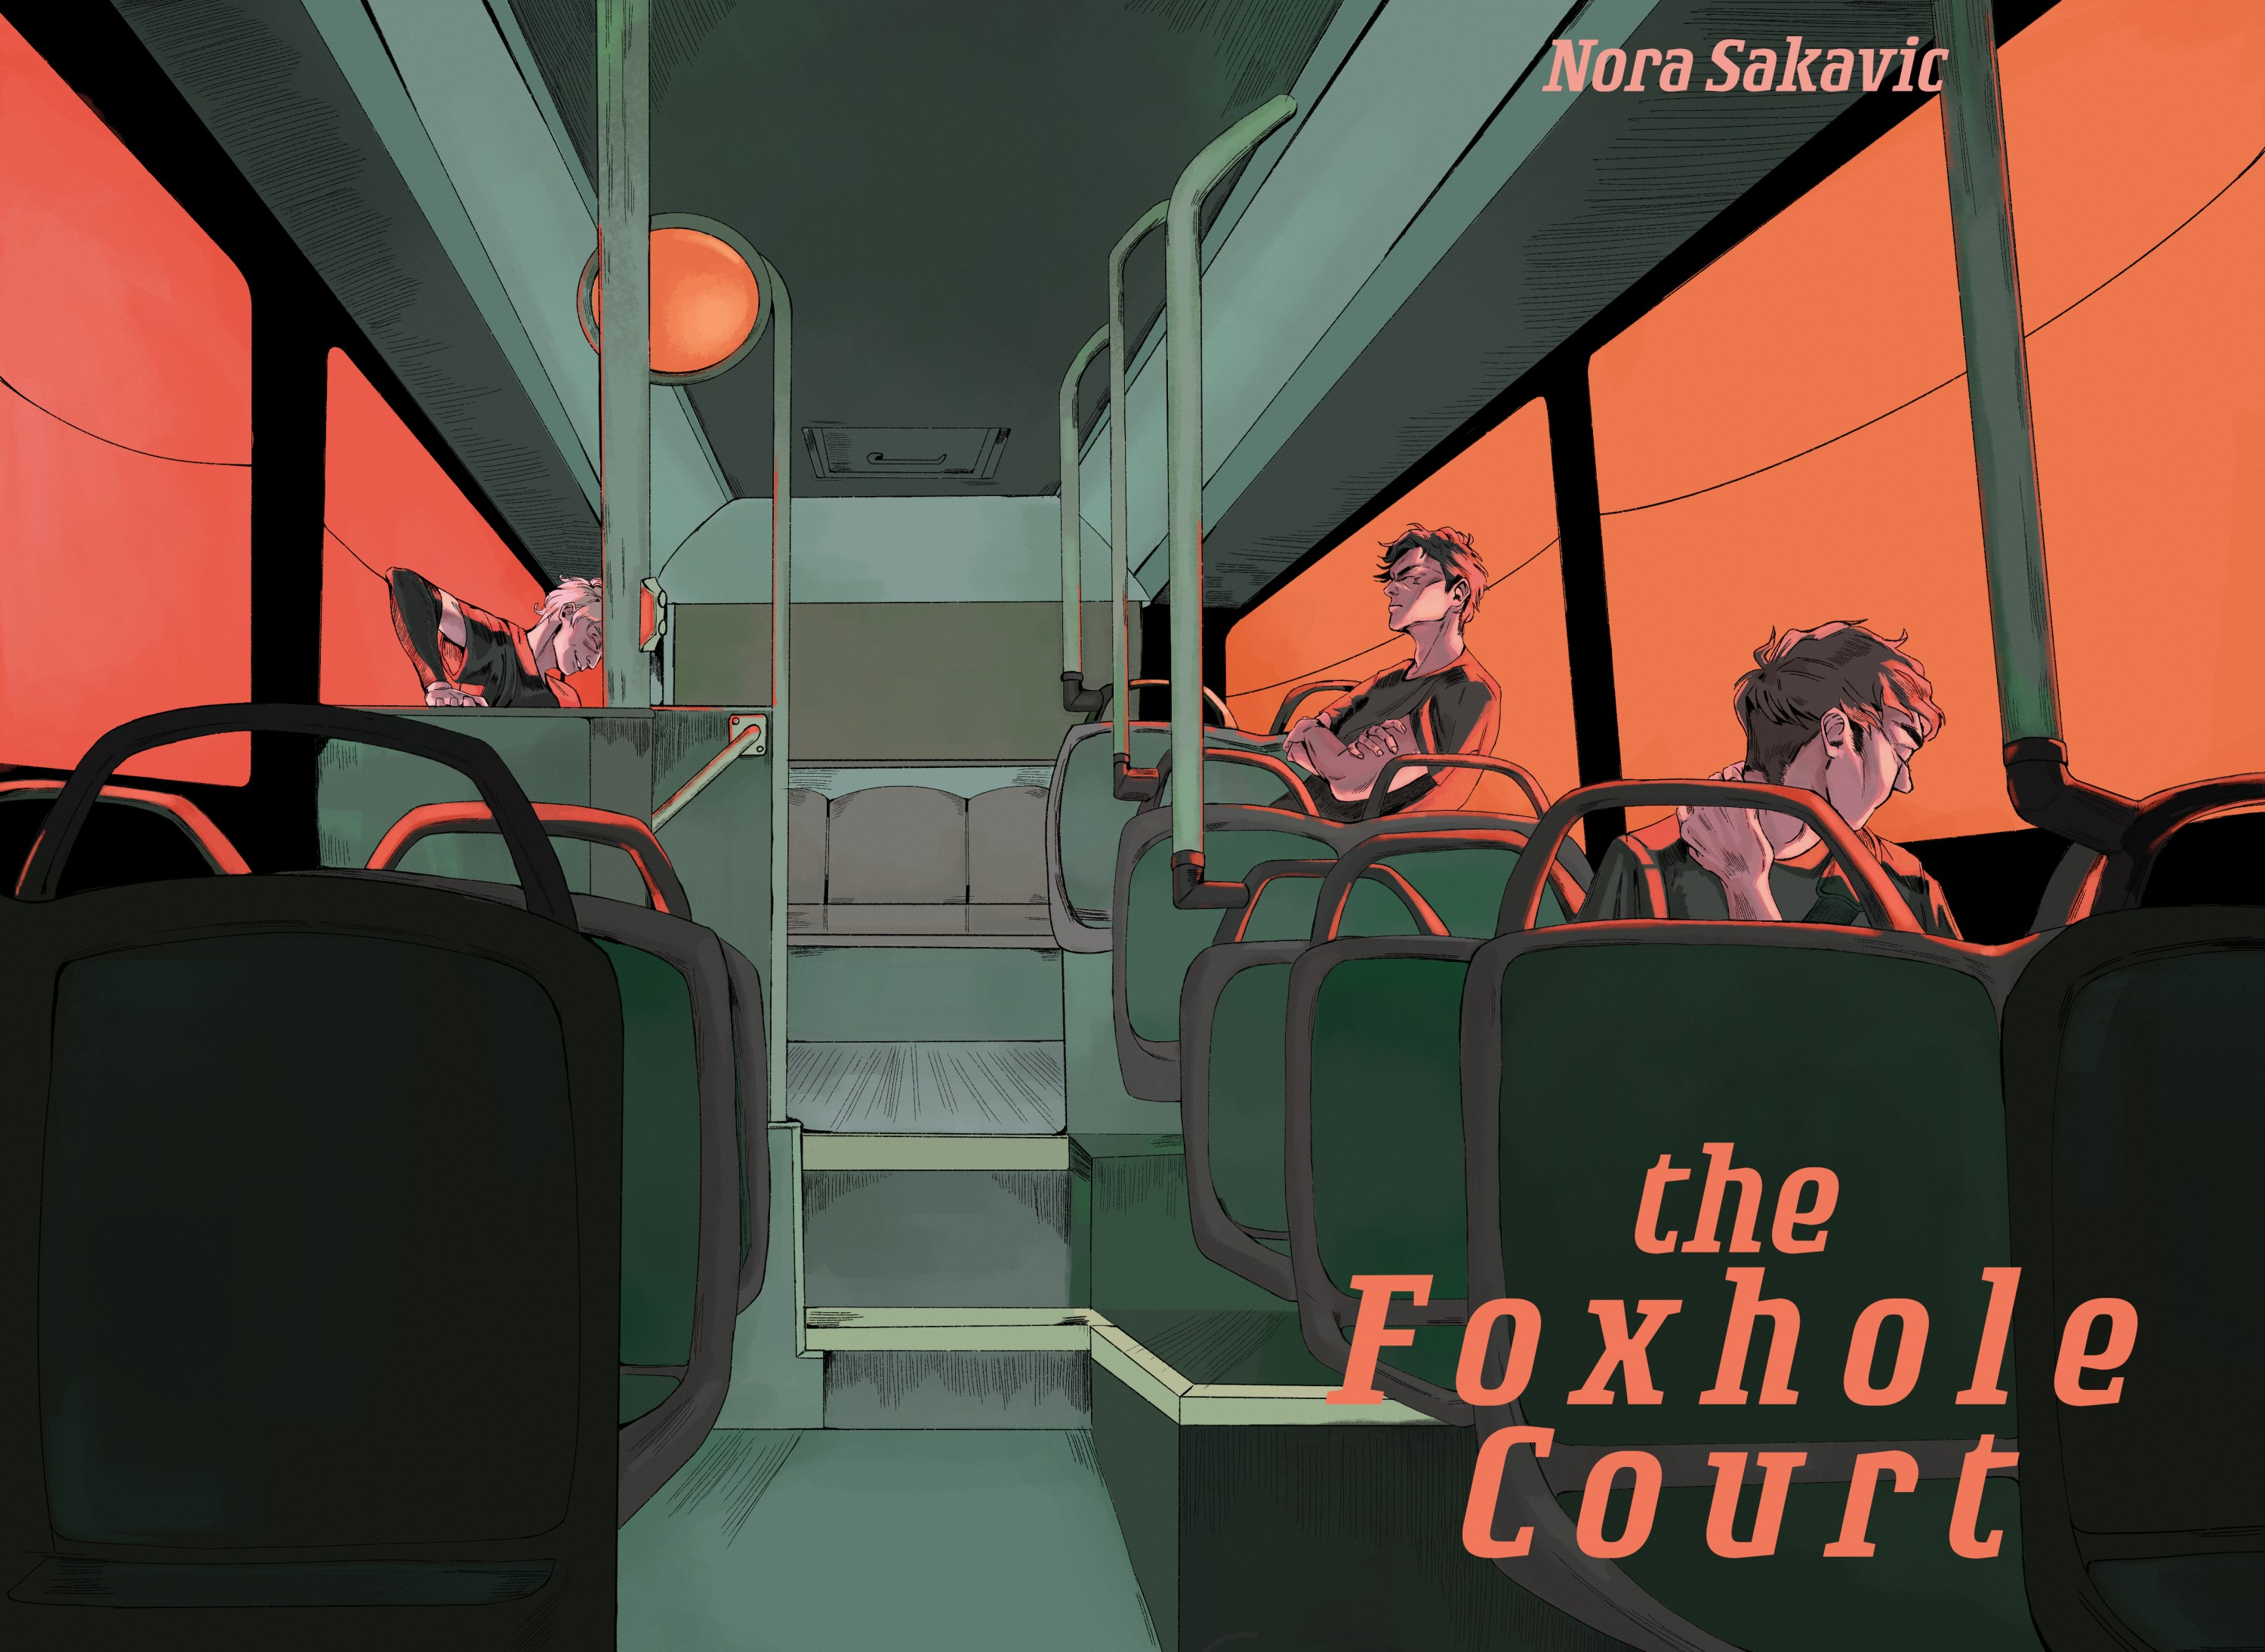 The Foxhole Court book cover. Shows three figures on a bus while the sunsets.